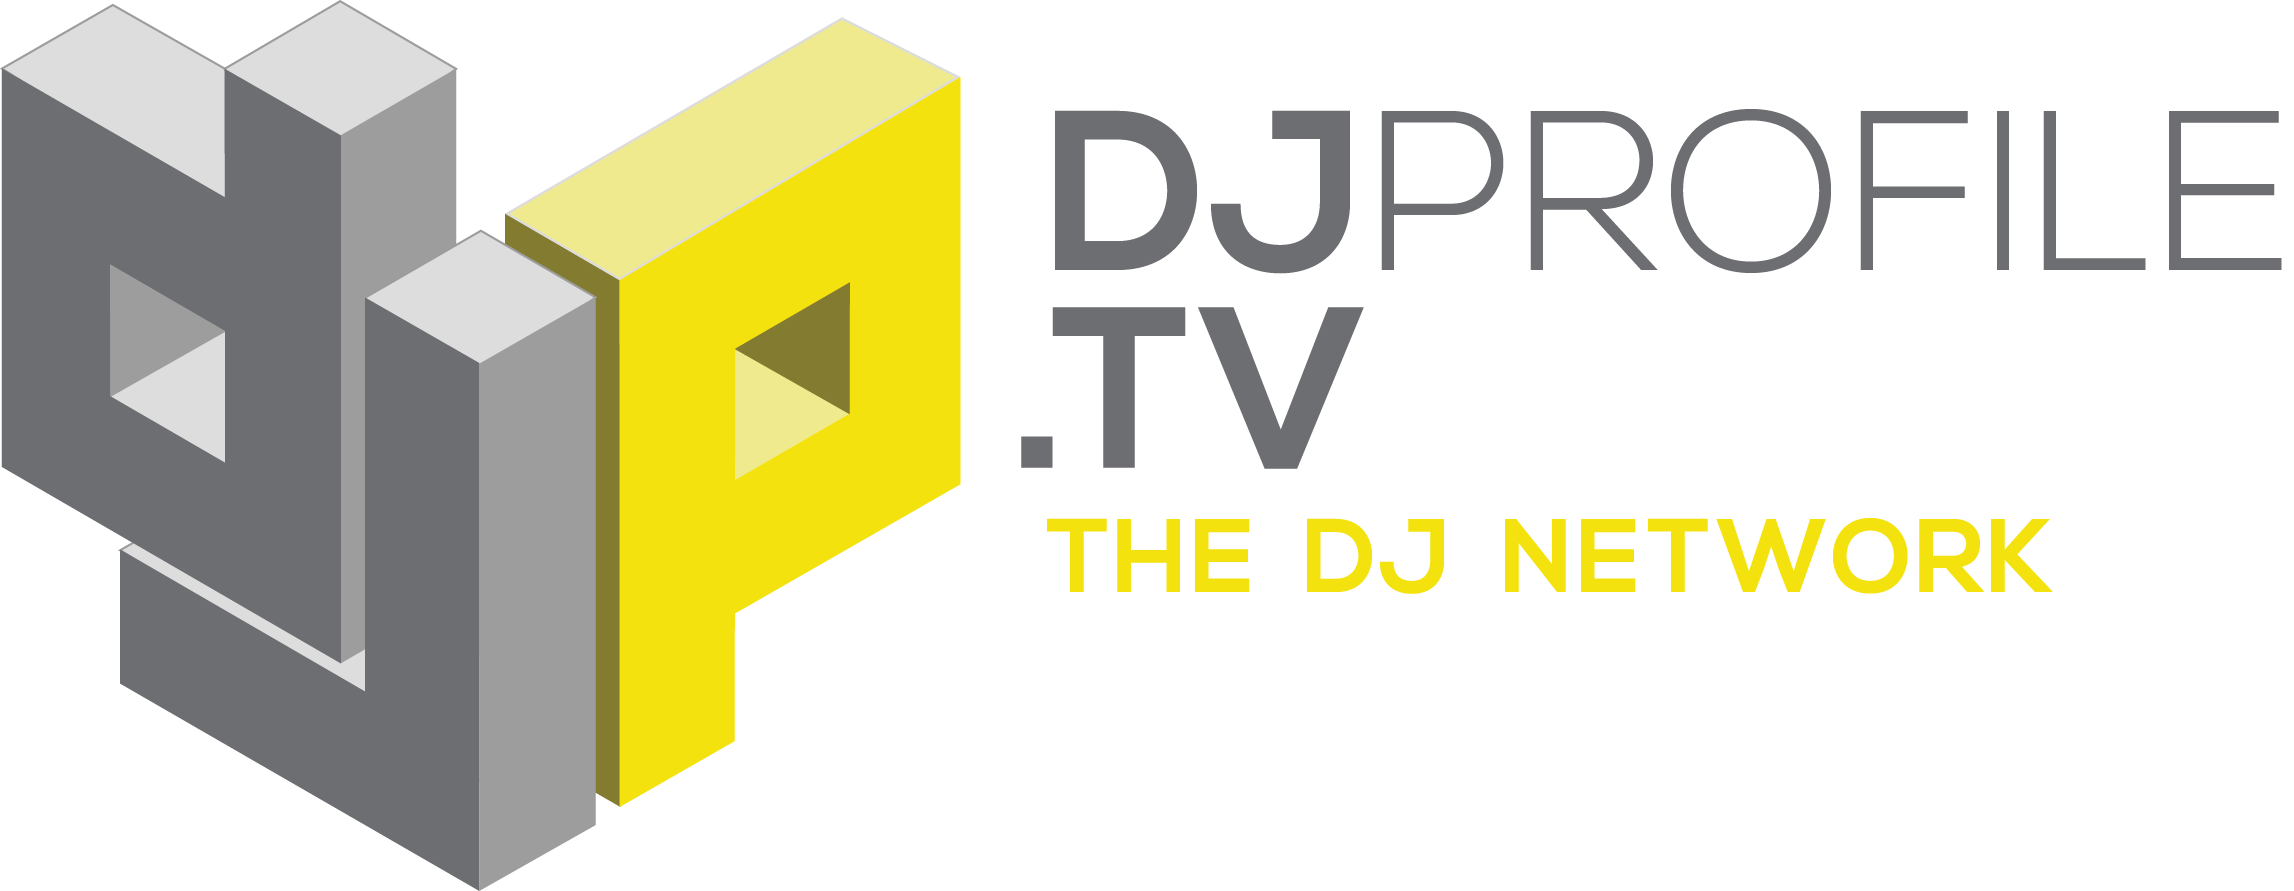 www.djprofile.tv